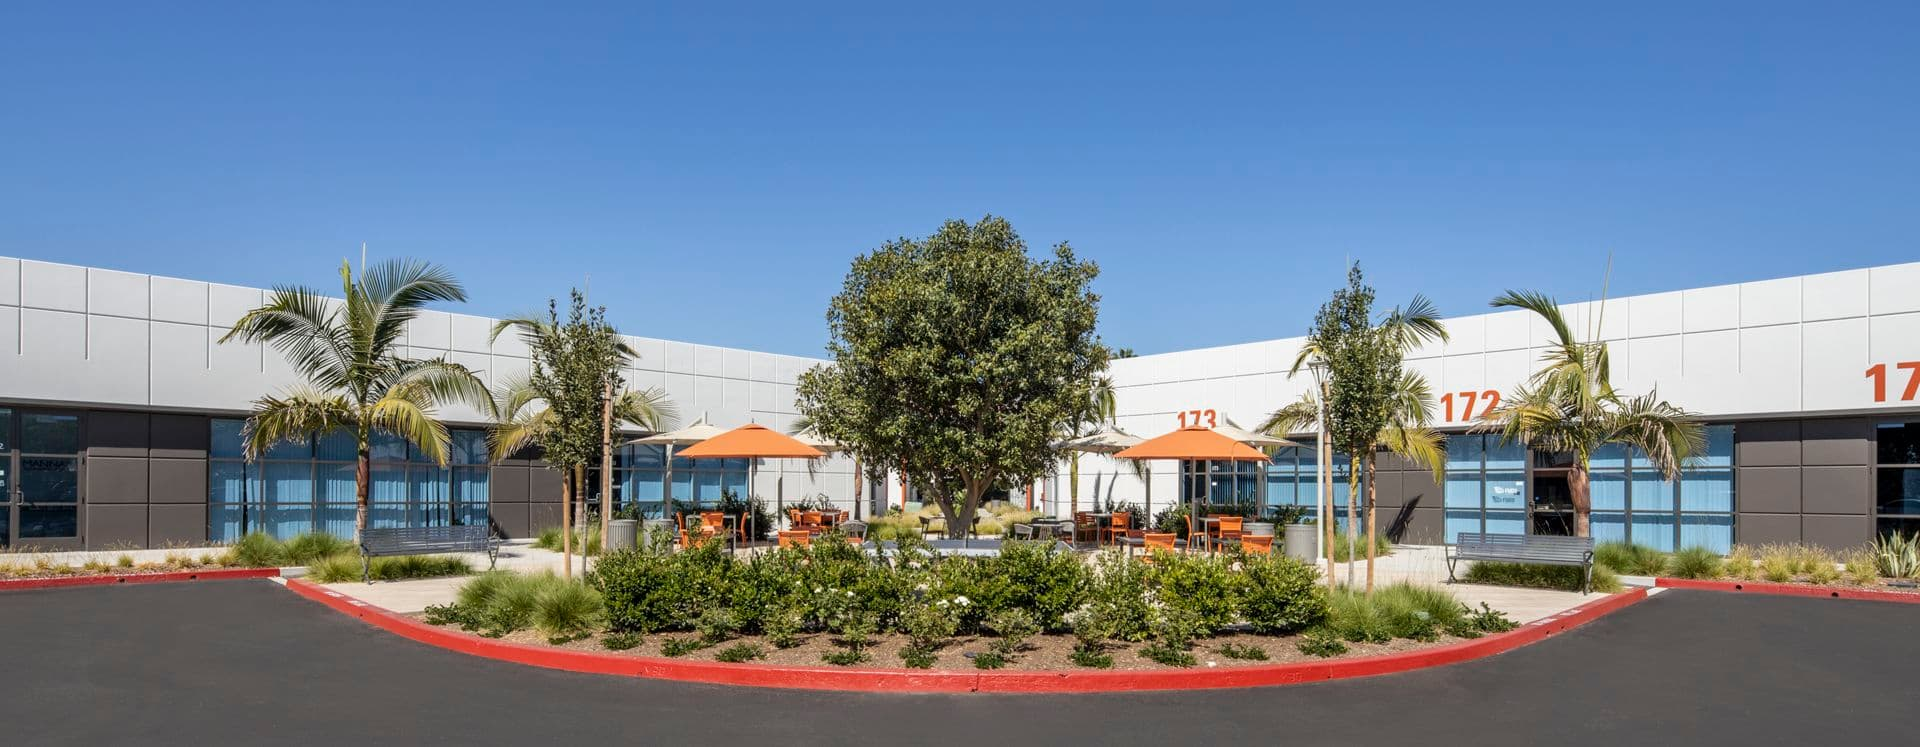 Exterior view of 16 Technology at Technology Link in Irvine, CA.